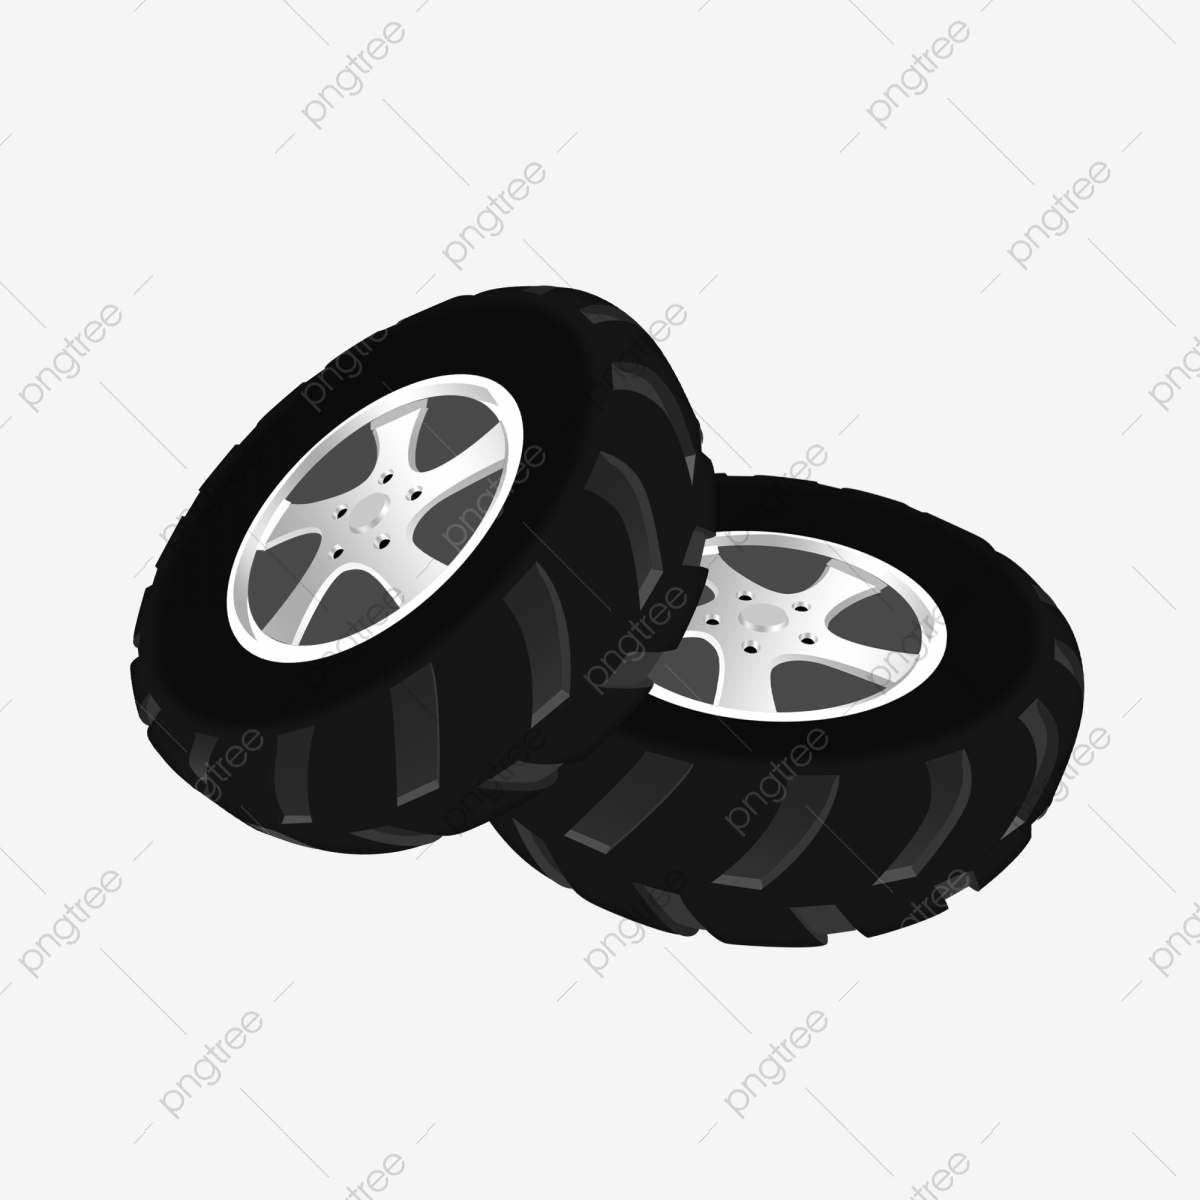 Cartoon Tires Png Images Vector And Psd Files Free Download On Pngtree